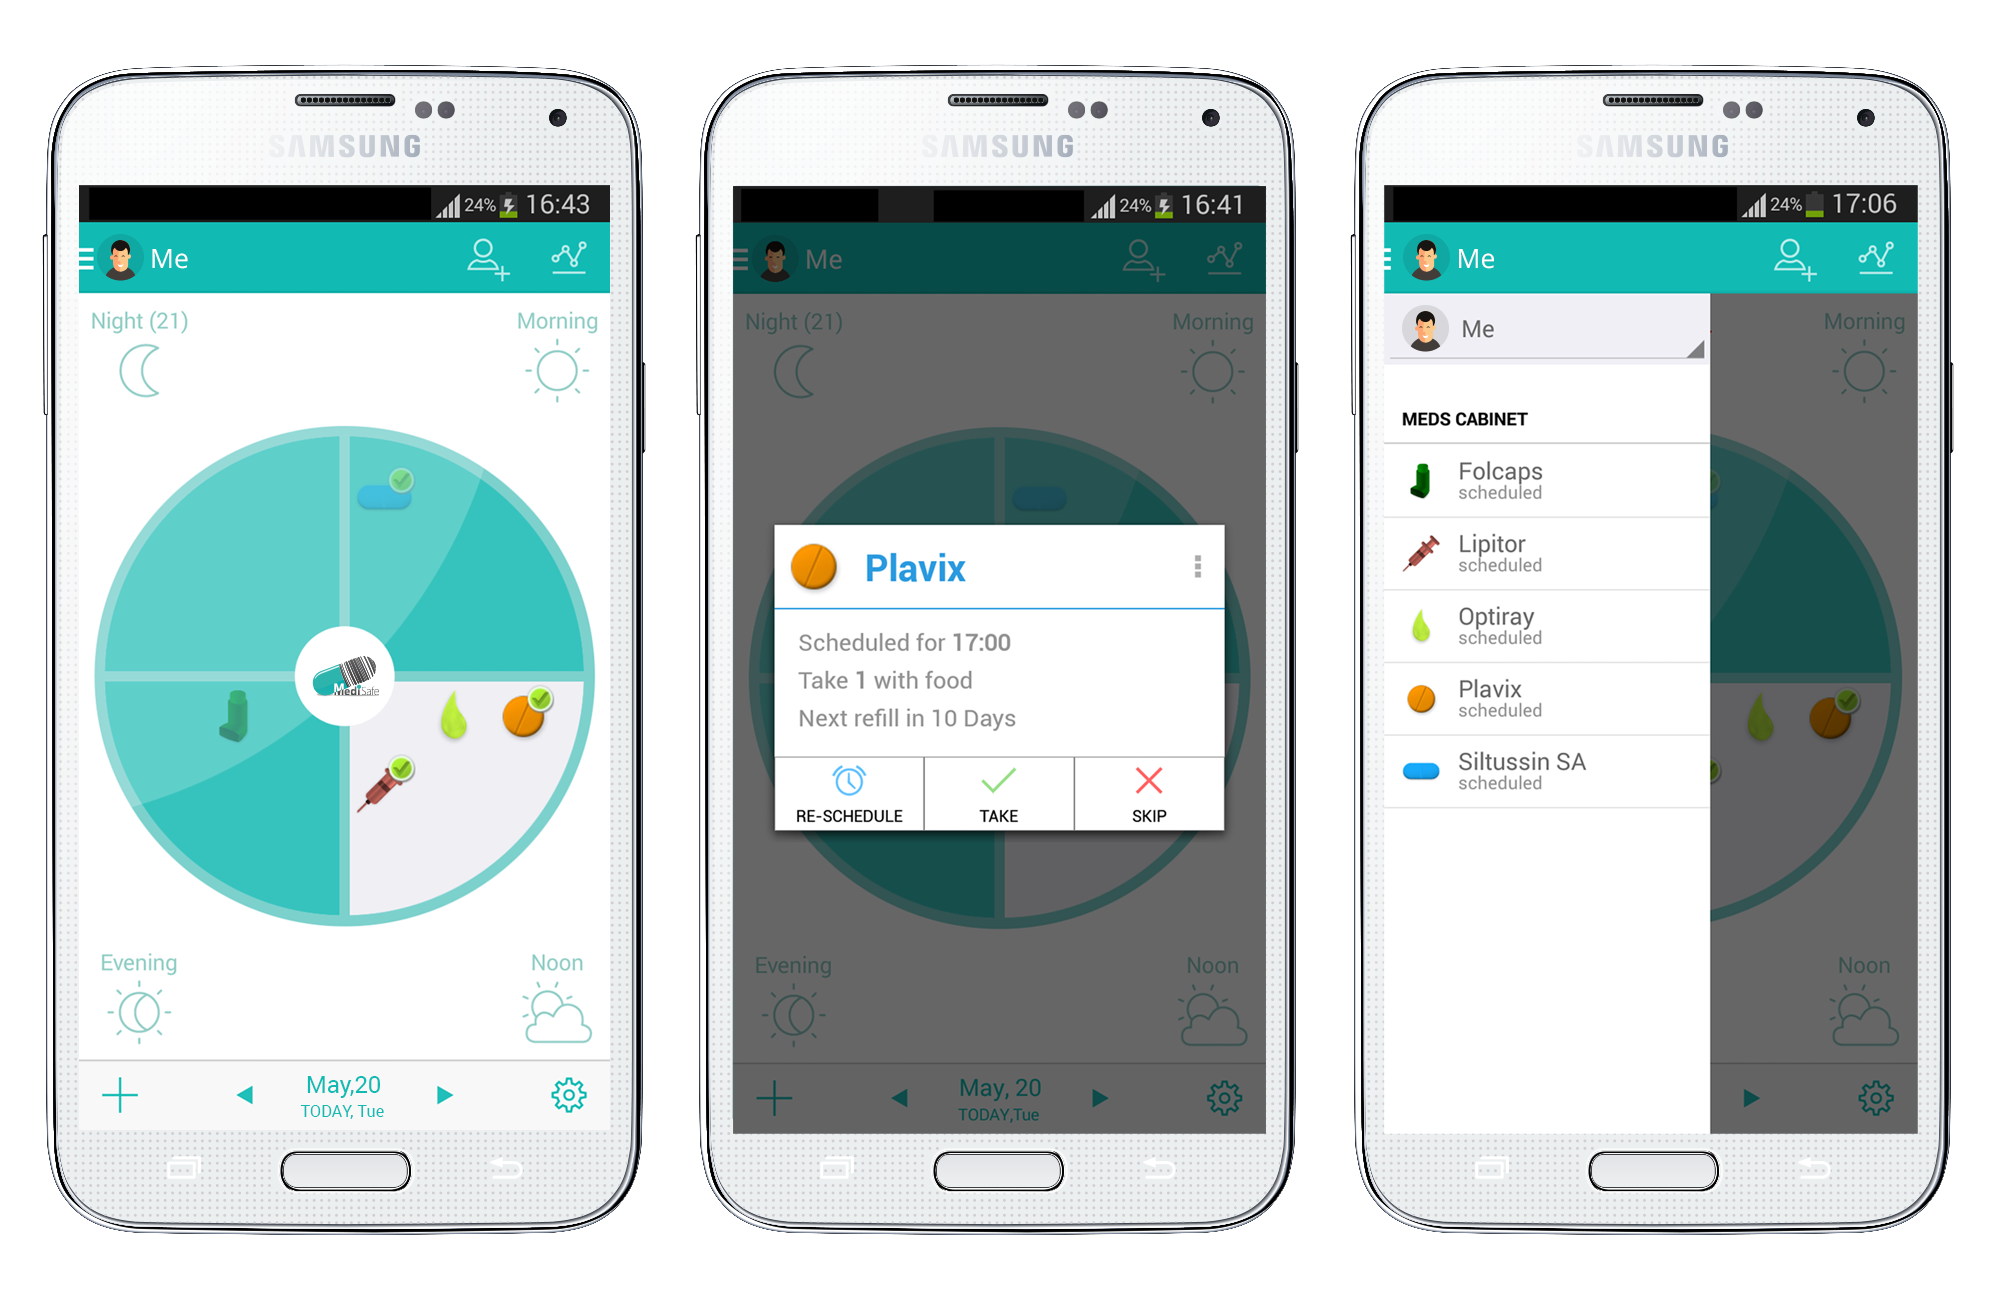 Medisafe Adds Android Wear Support To Remind You To Take